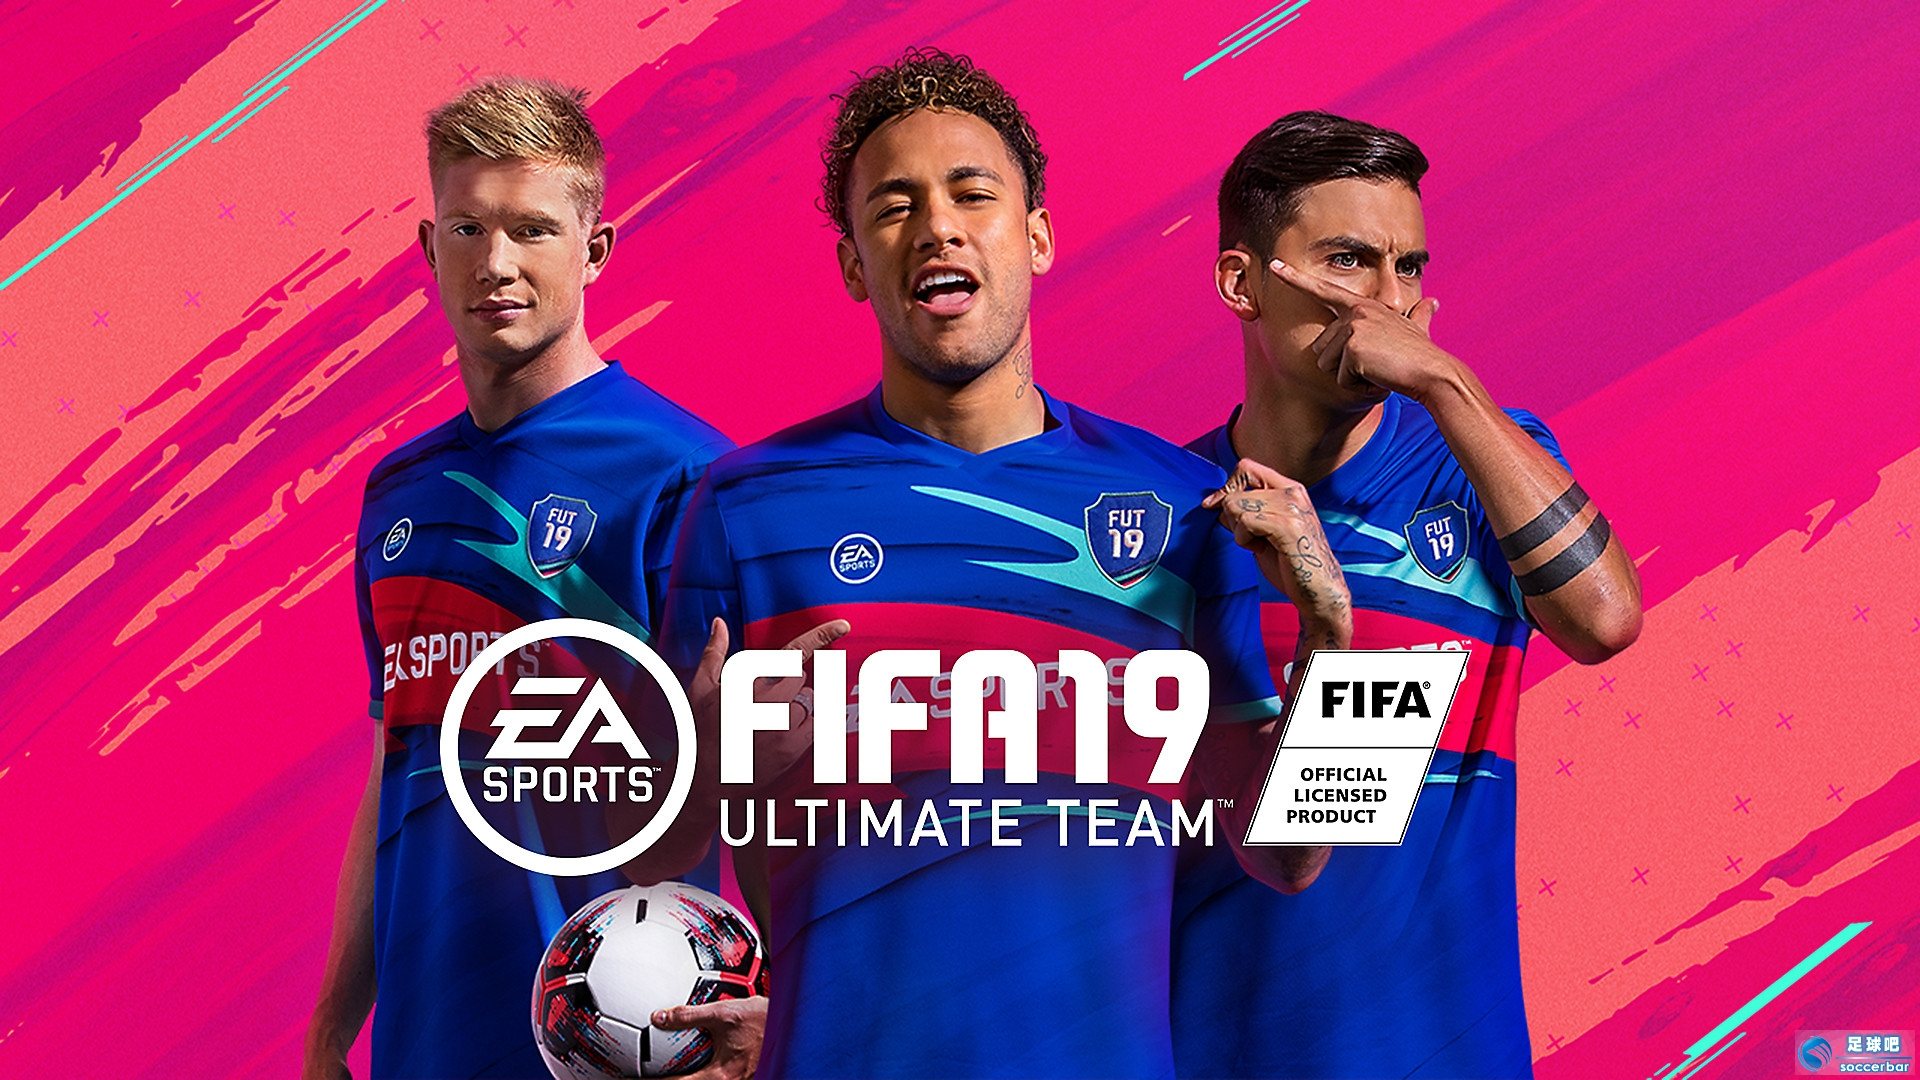 fifa-19-ultimate-team-key-art-01-us-11dec18.jpg